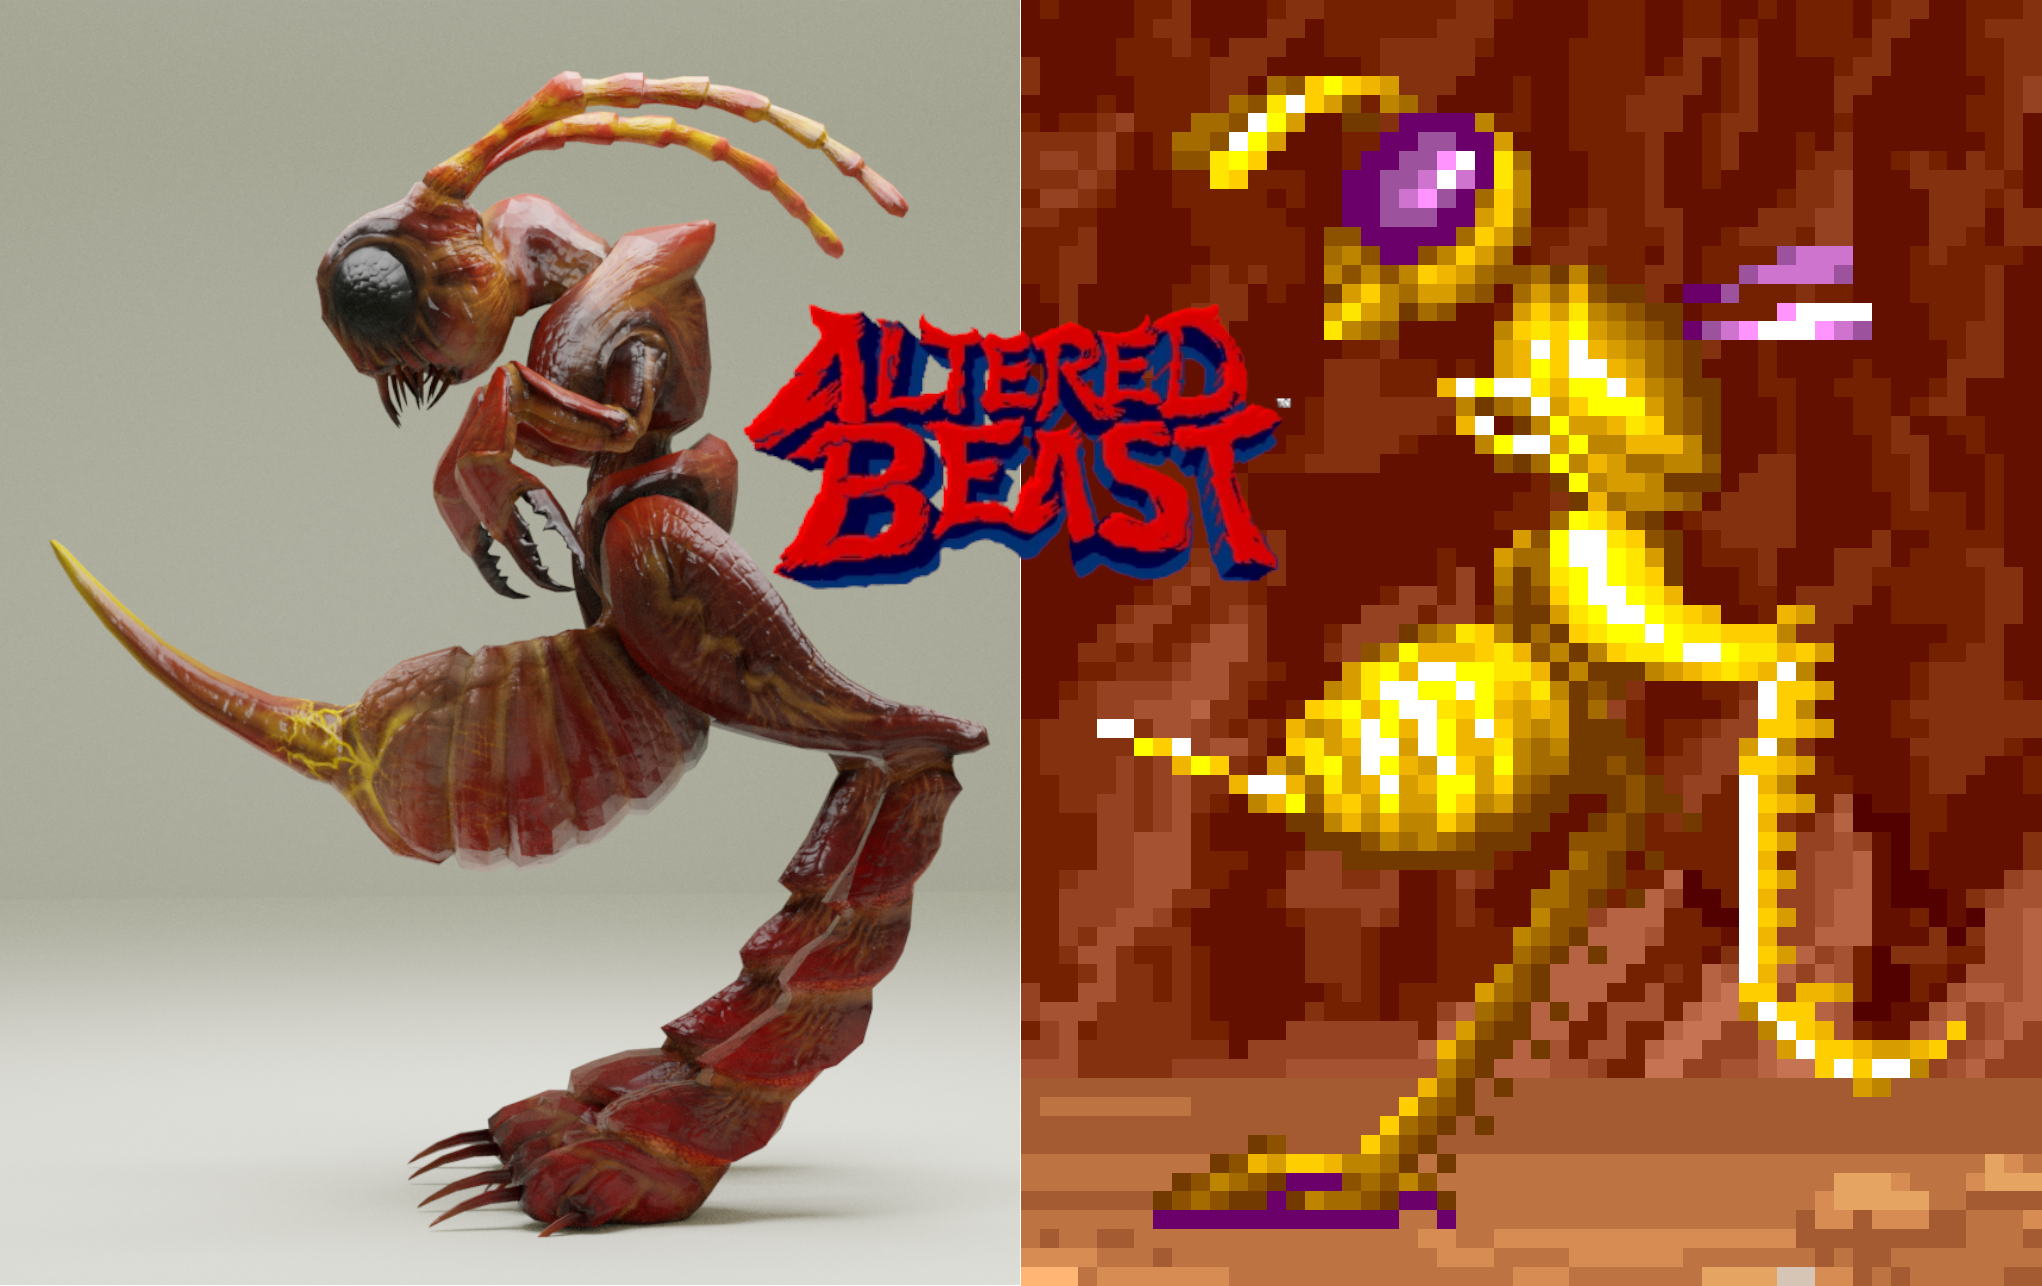 Cave Needle Stining Ant 3d Render, Altered Beast Inspired Monster